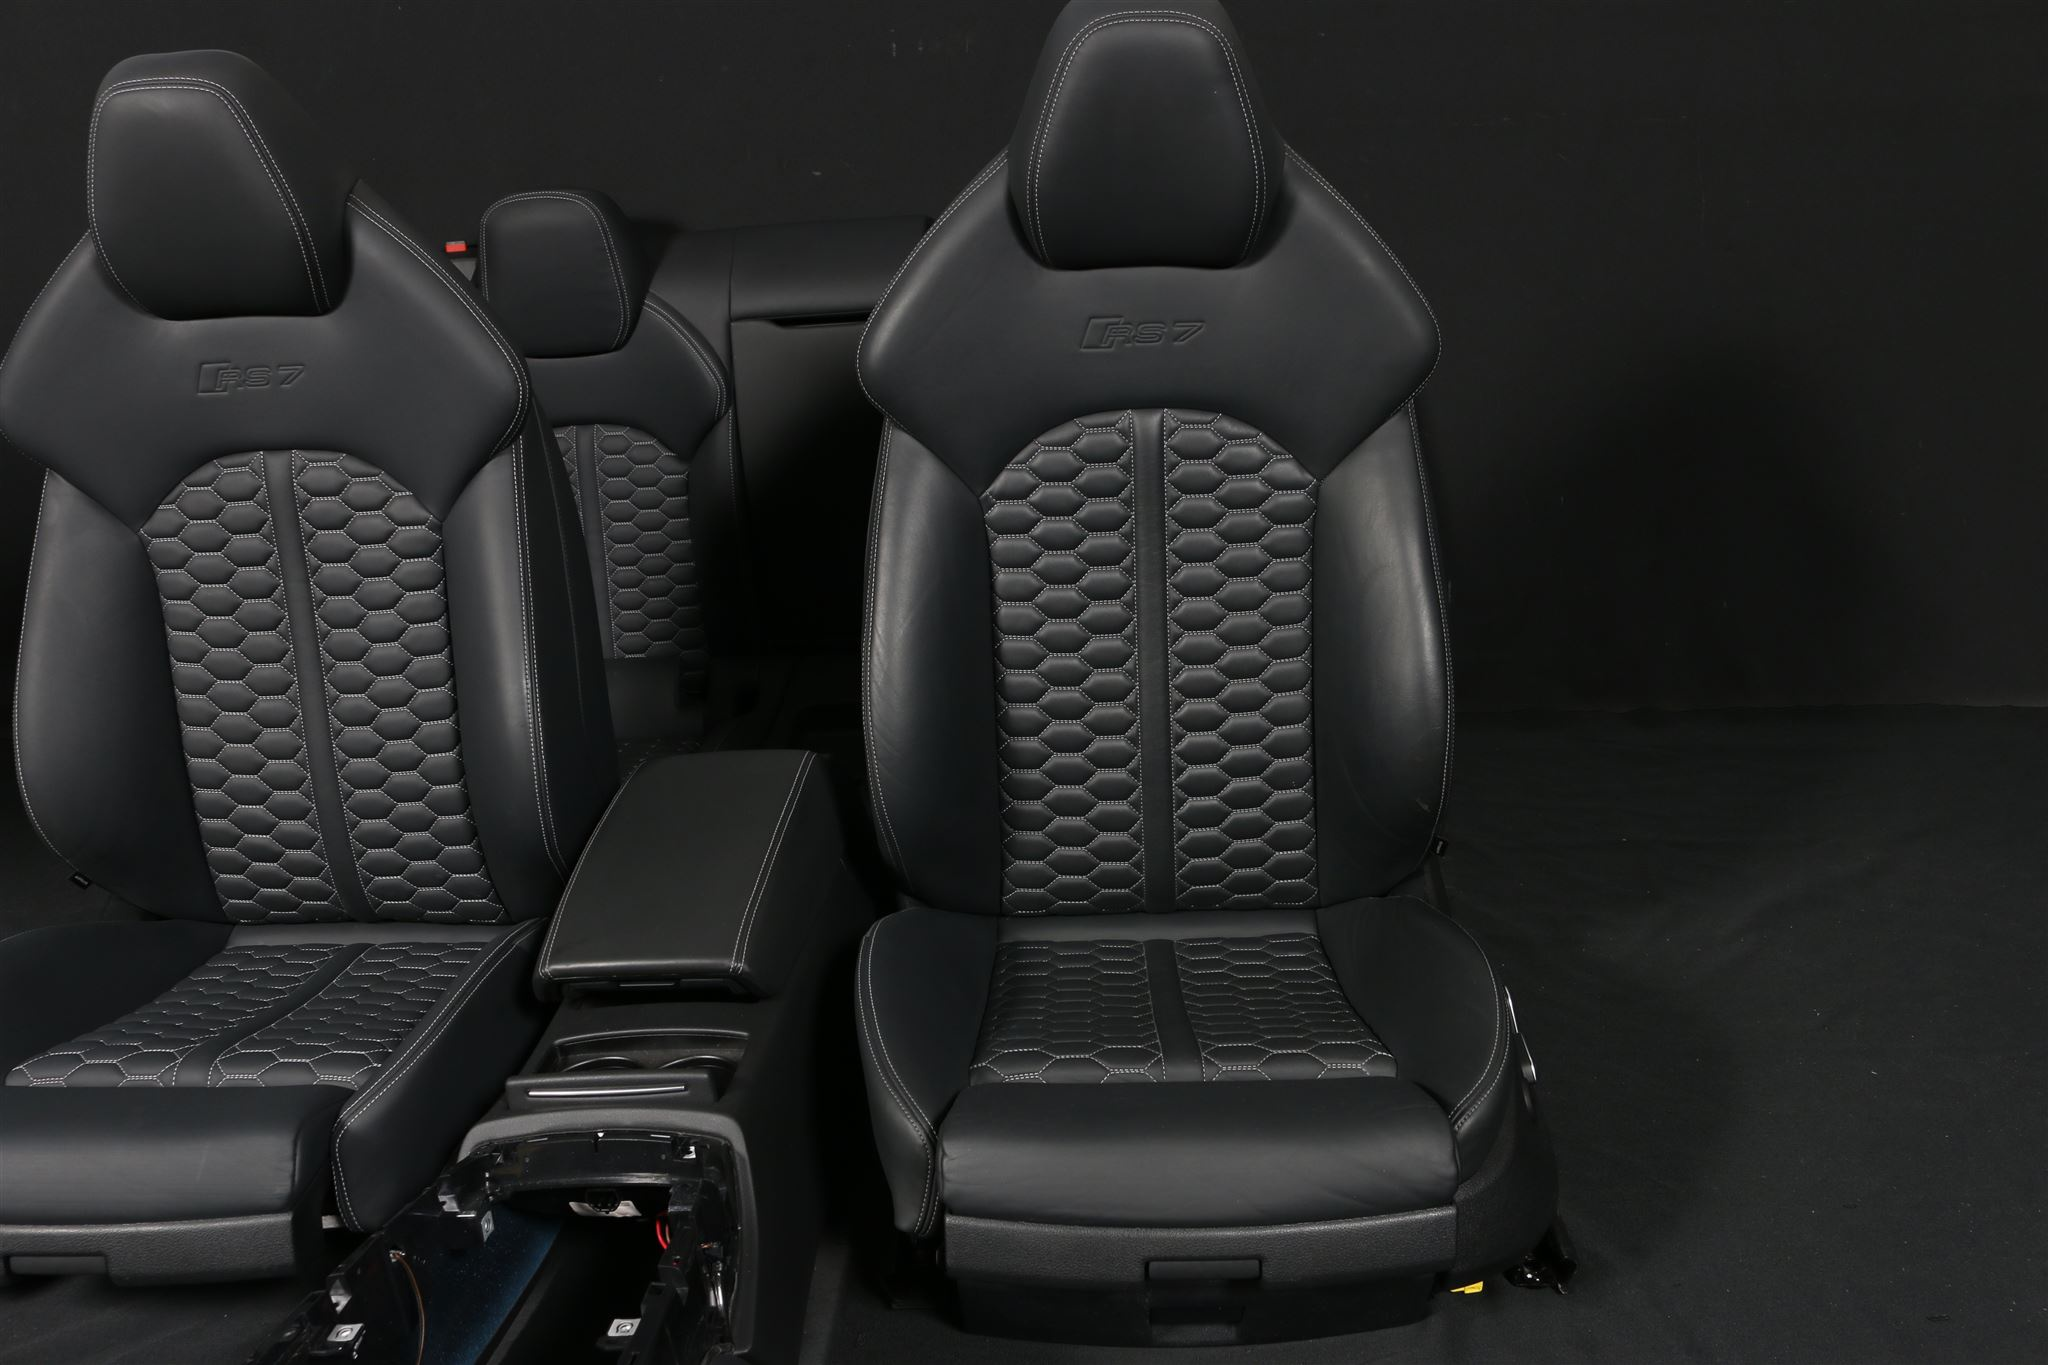 audi s7 rs7 4g recaro sport leder sitze lederausstattung leather seats interior ebay. Black Bedroom Furniture Sets. Home Design Ideas